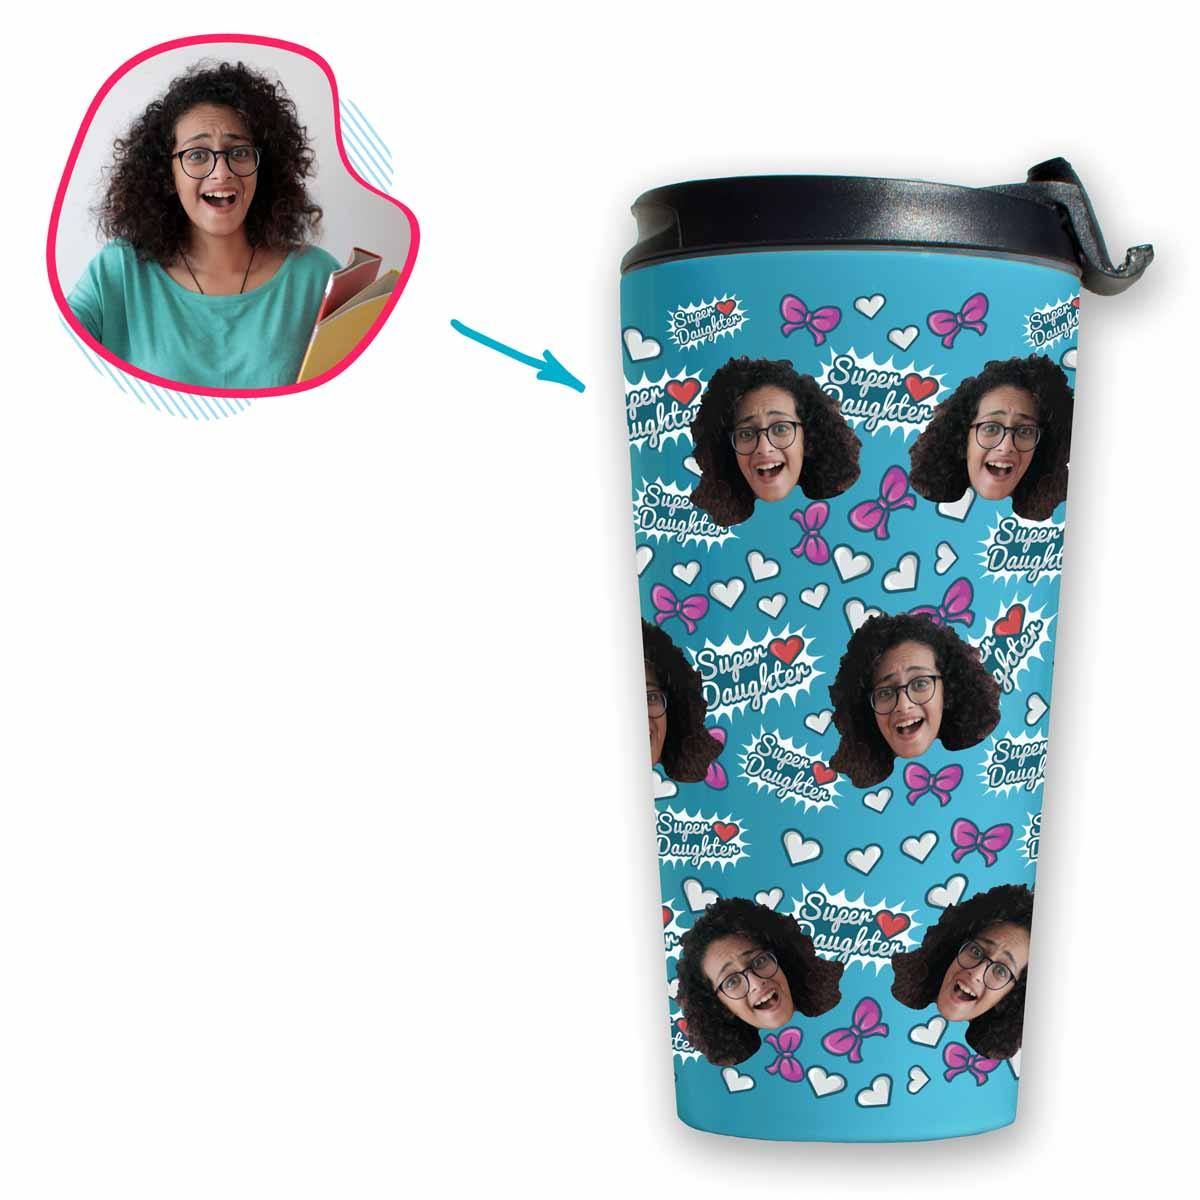 blue Super Daughter travel mug personalized with photo of face printed on it